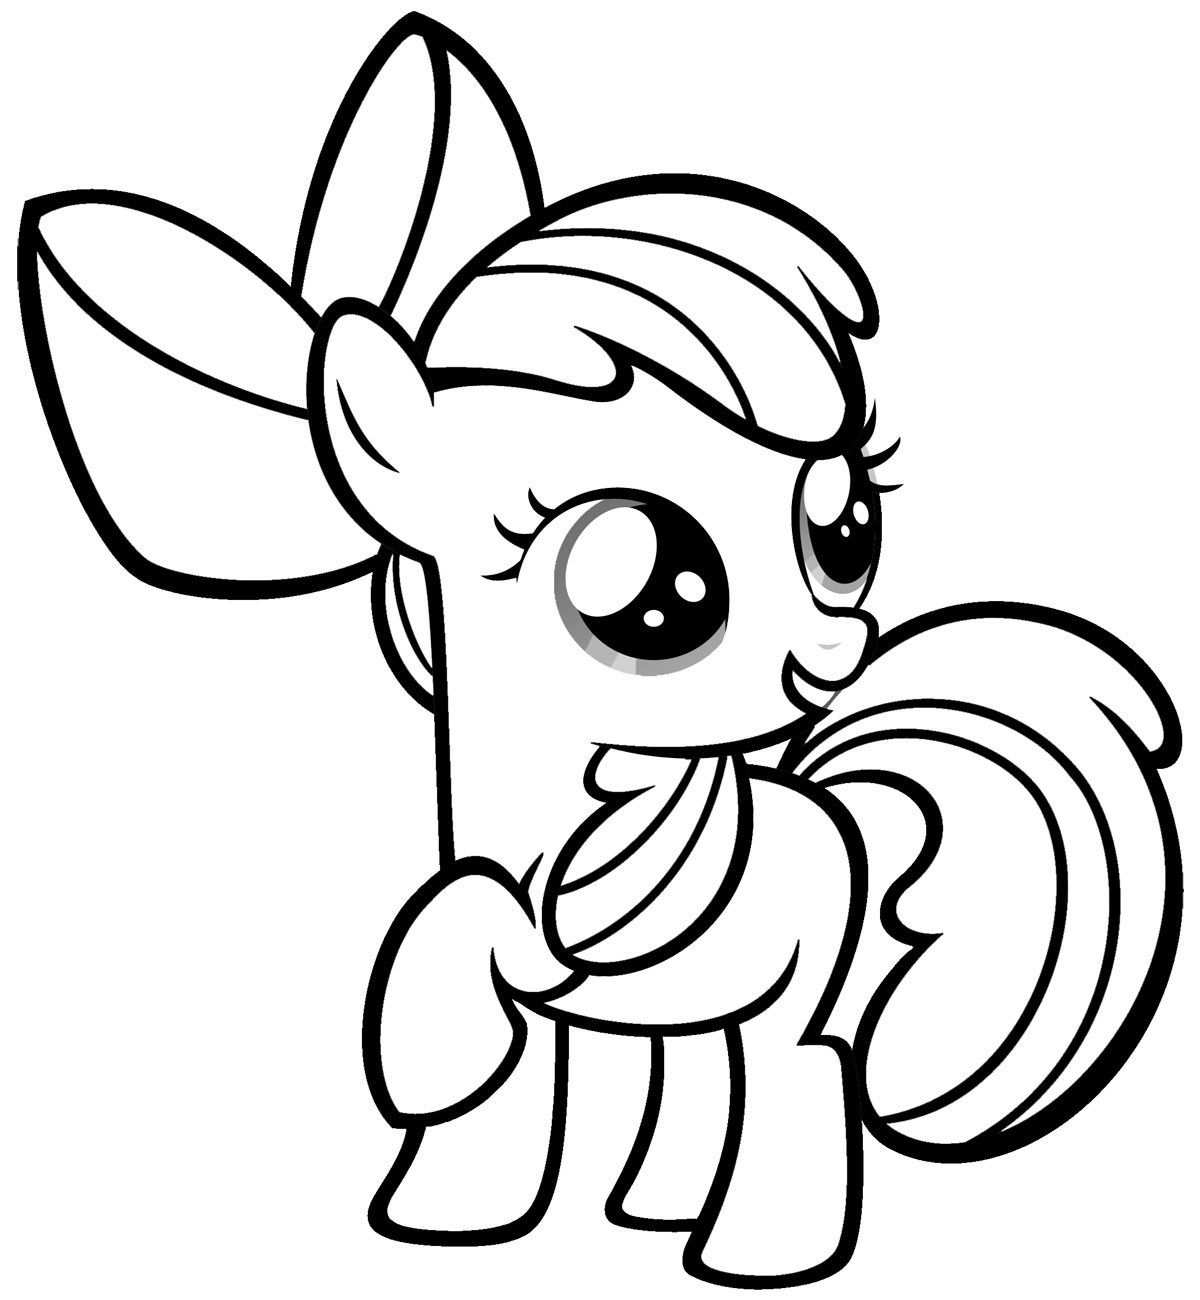 My little pony coloring pages youtube - My Little Pony Coloring Pages Apple Bloom My Little Pony Coloring Pages To Print Free